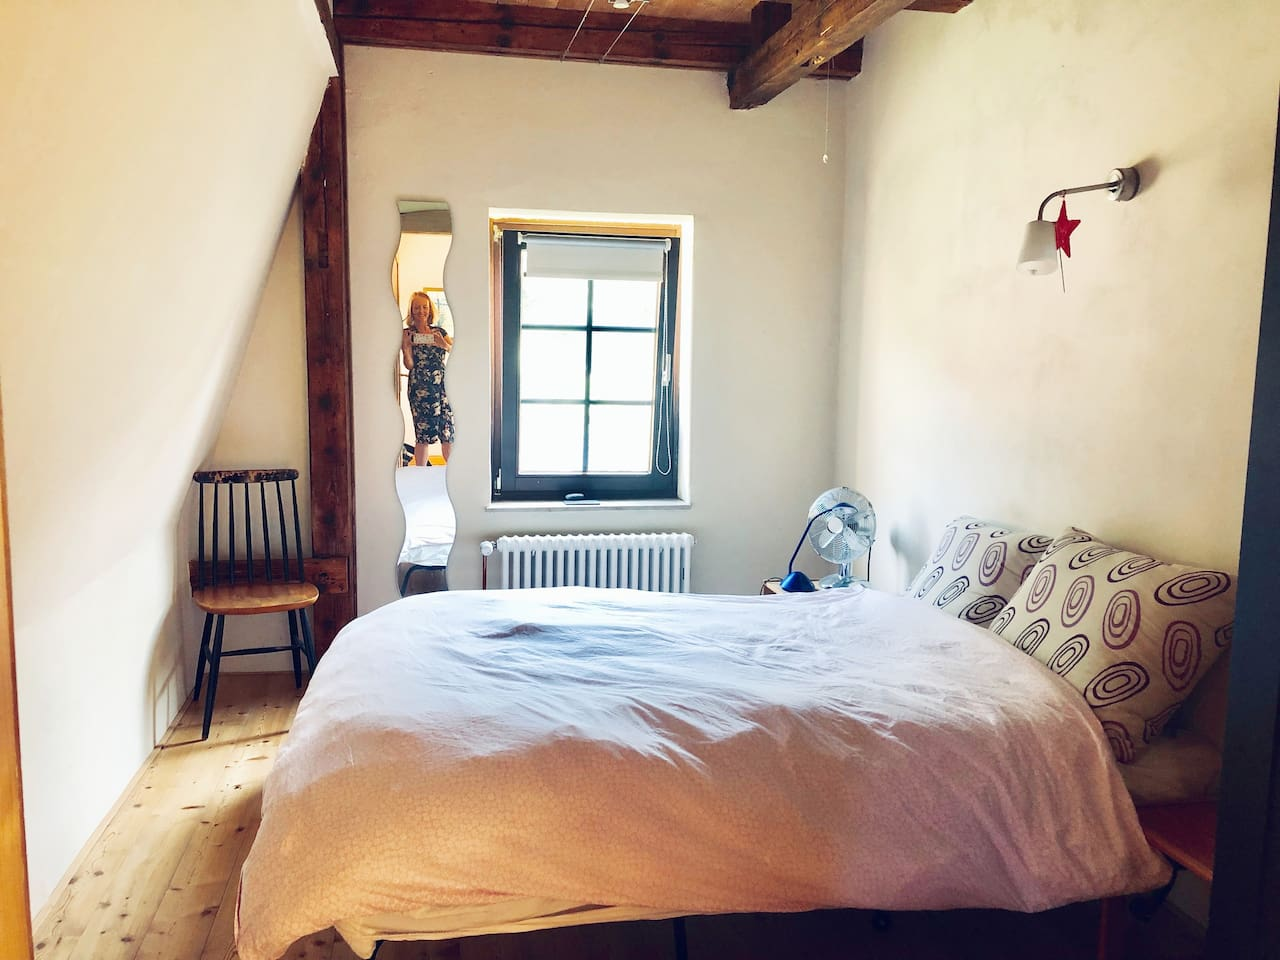 Small and cosy room awaits you!  Please note this room if you or you and your partner are 6ft (1.8m) tall try our large converted attic double bedroom instead, for more comfort.